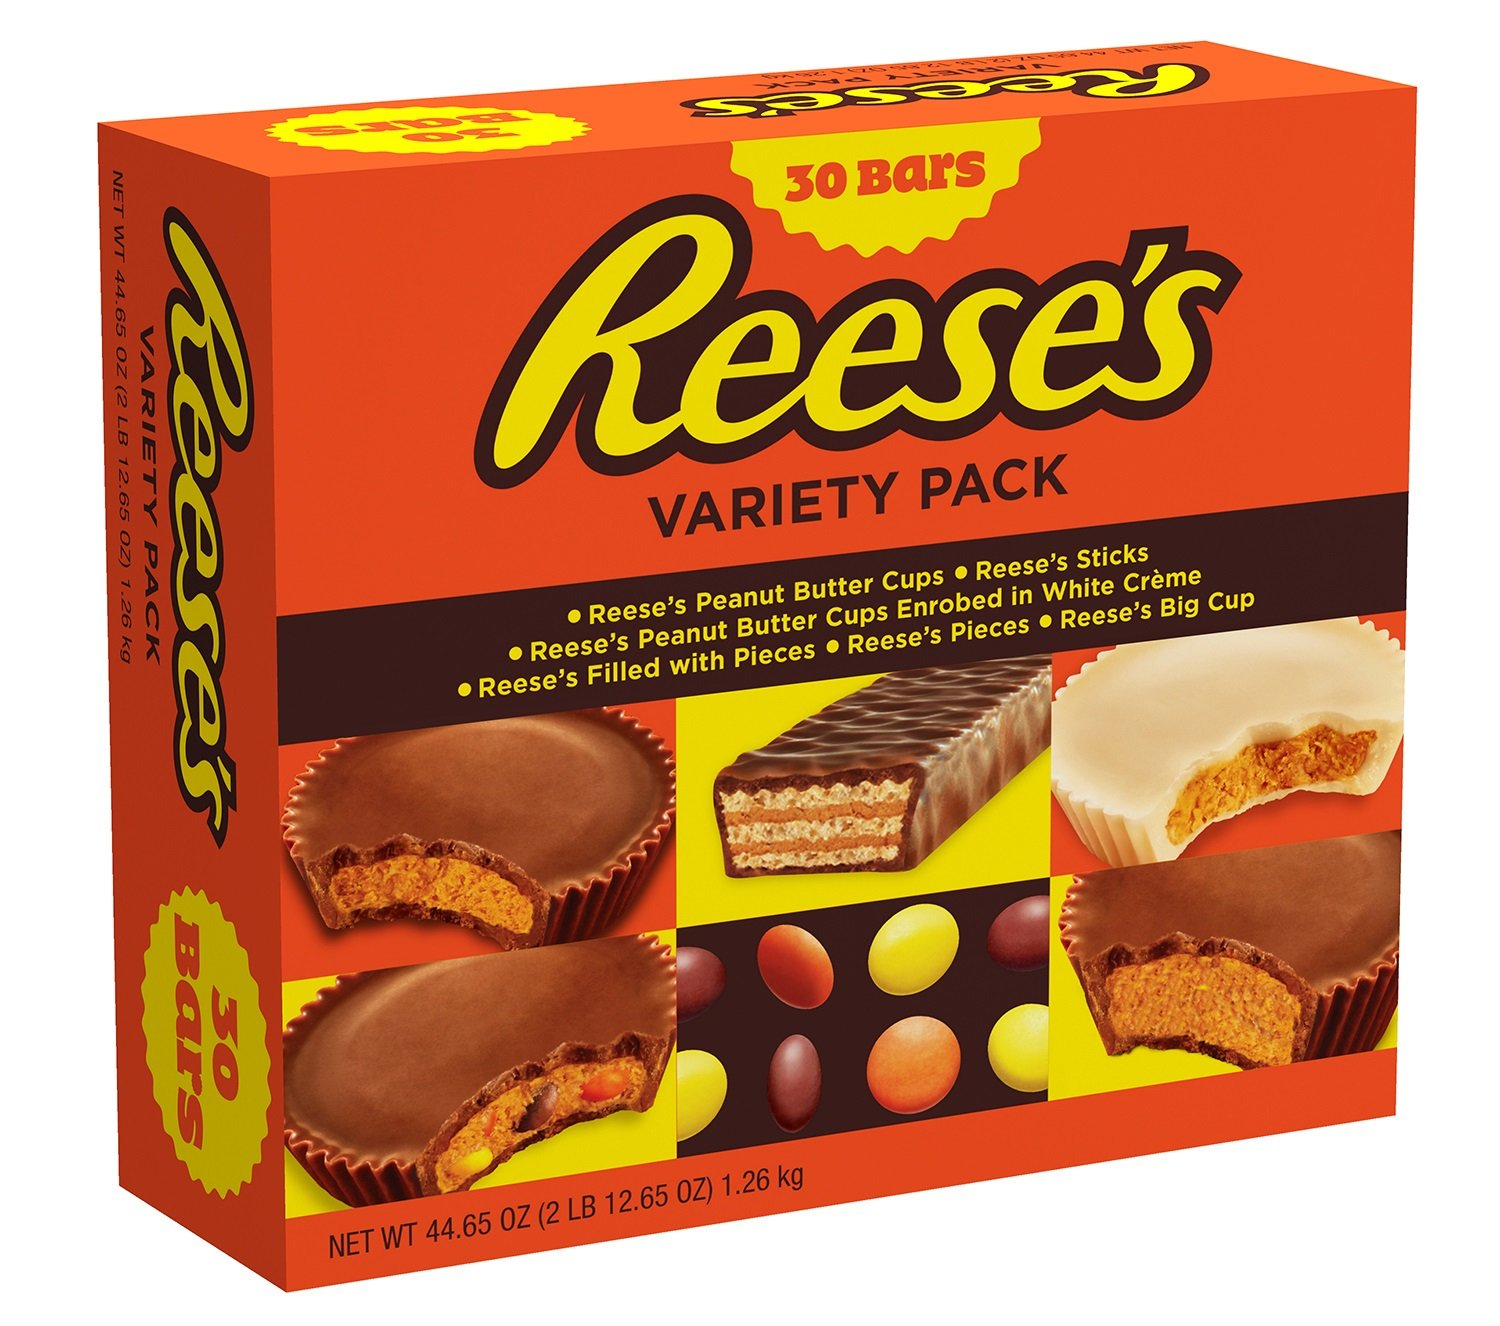 REESE'S Chocolate , Peanut Butter Candy, 30 Count Variety by Reese's